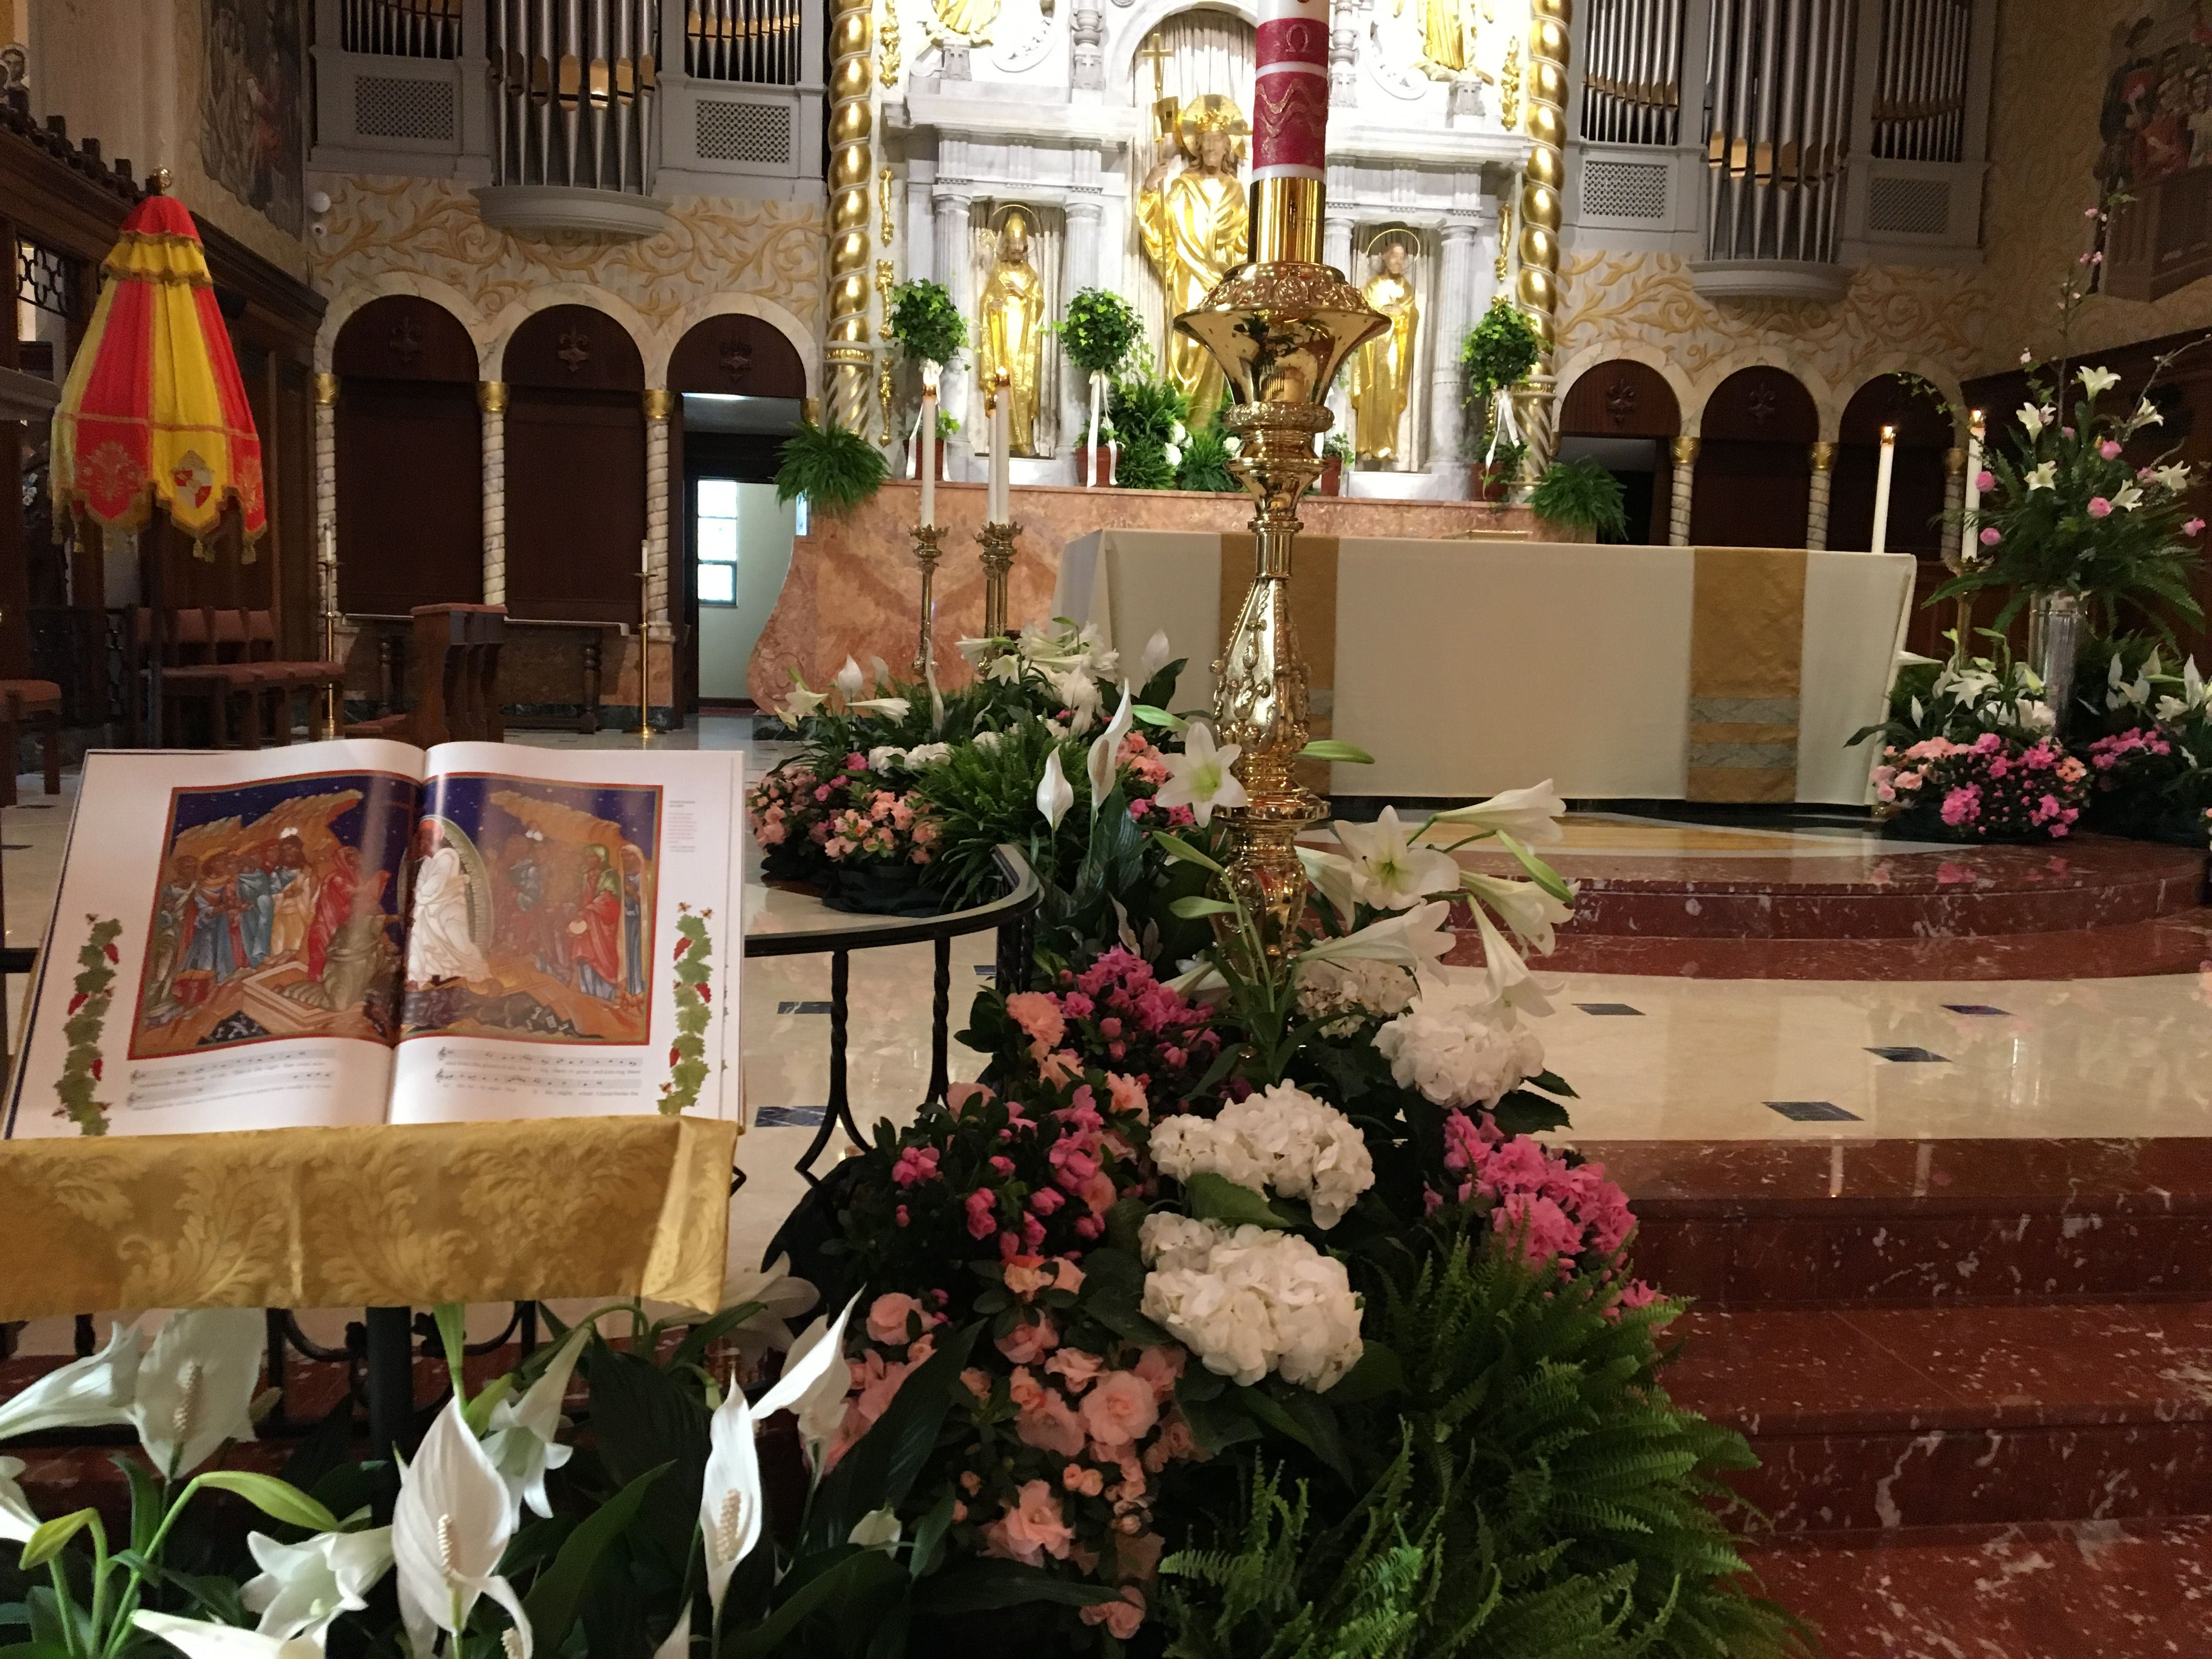 The alter on Easter Sunday